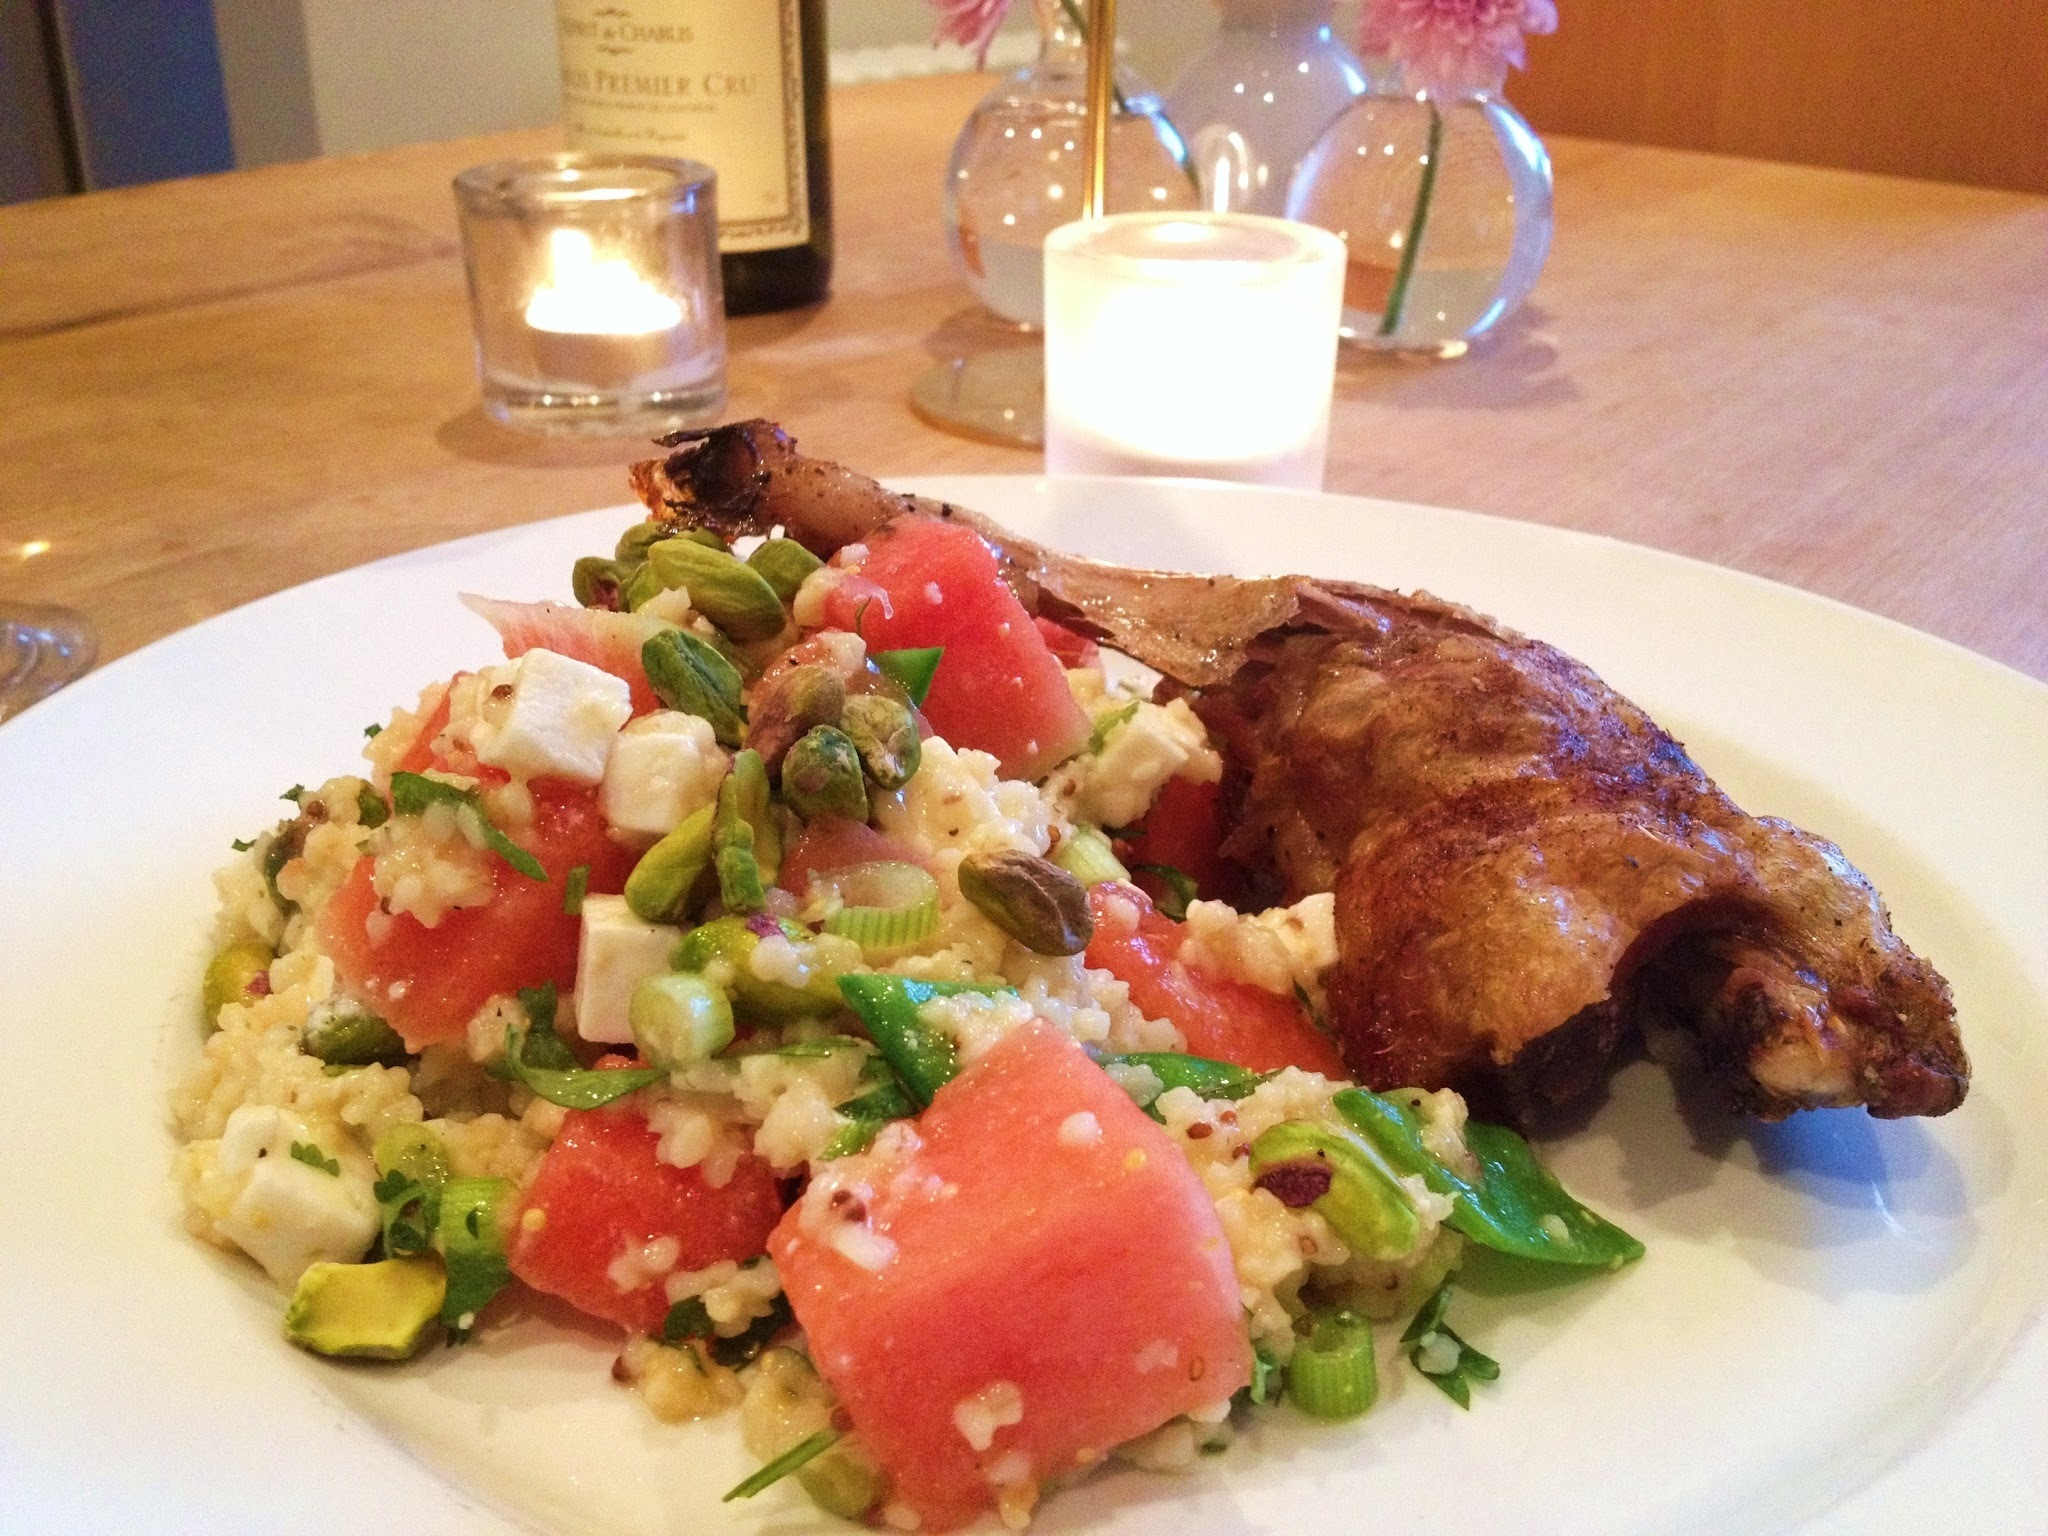 Five Spice Roast Duck Legs with Watermelon, Feta Cheese and Quinoa Salad